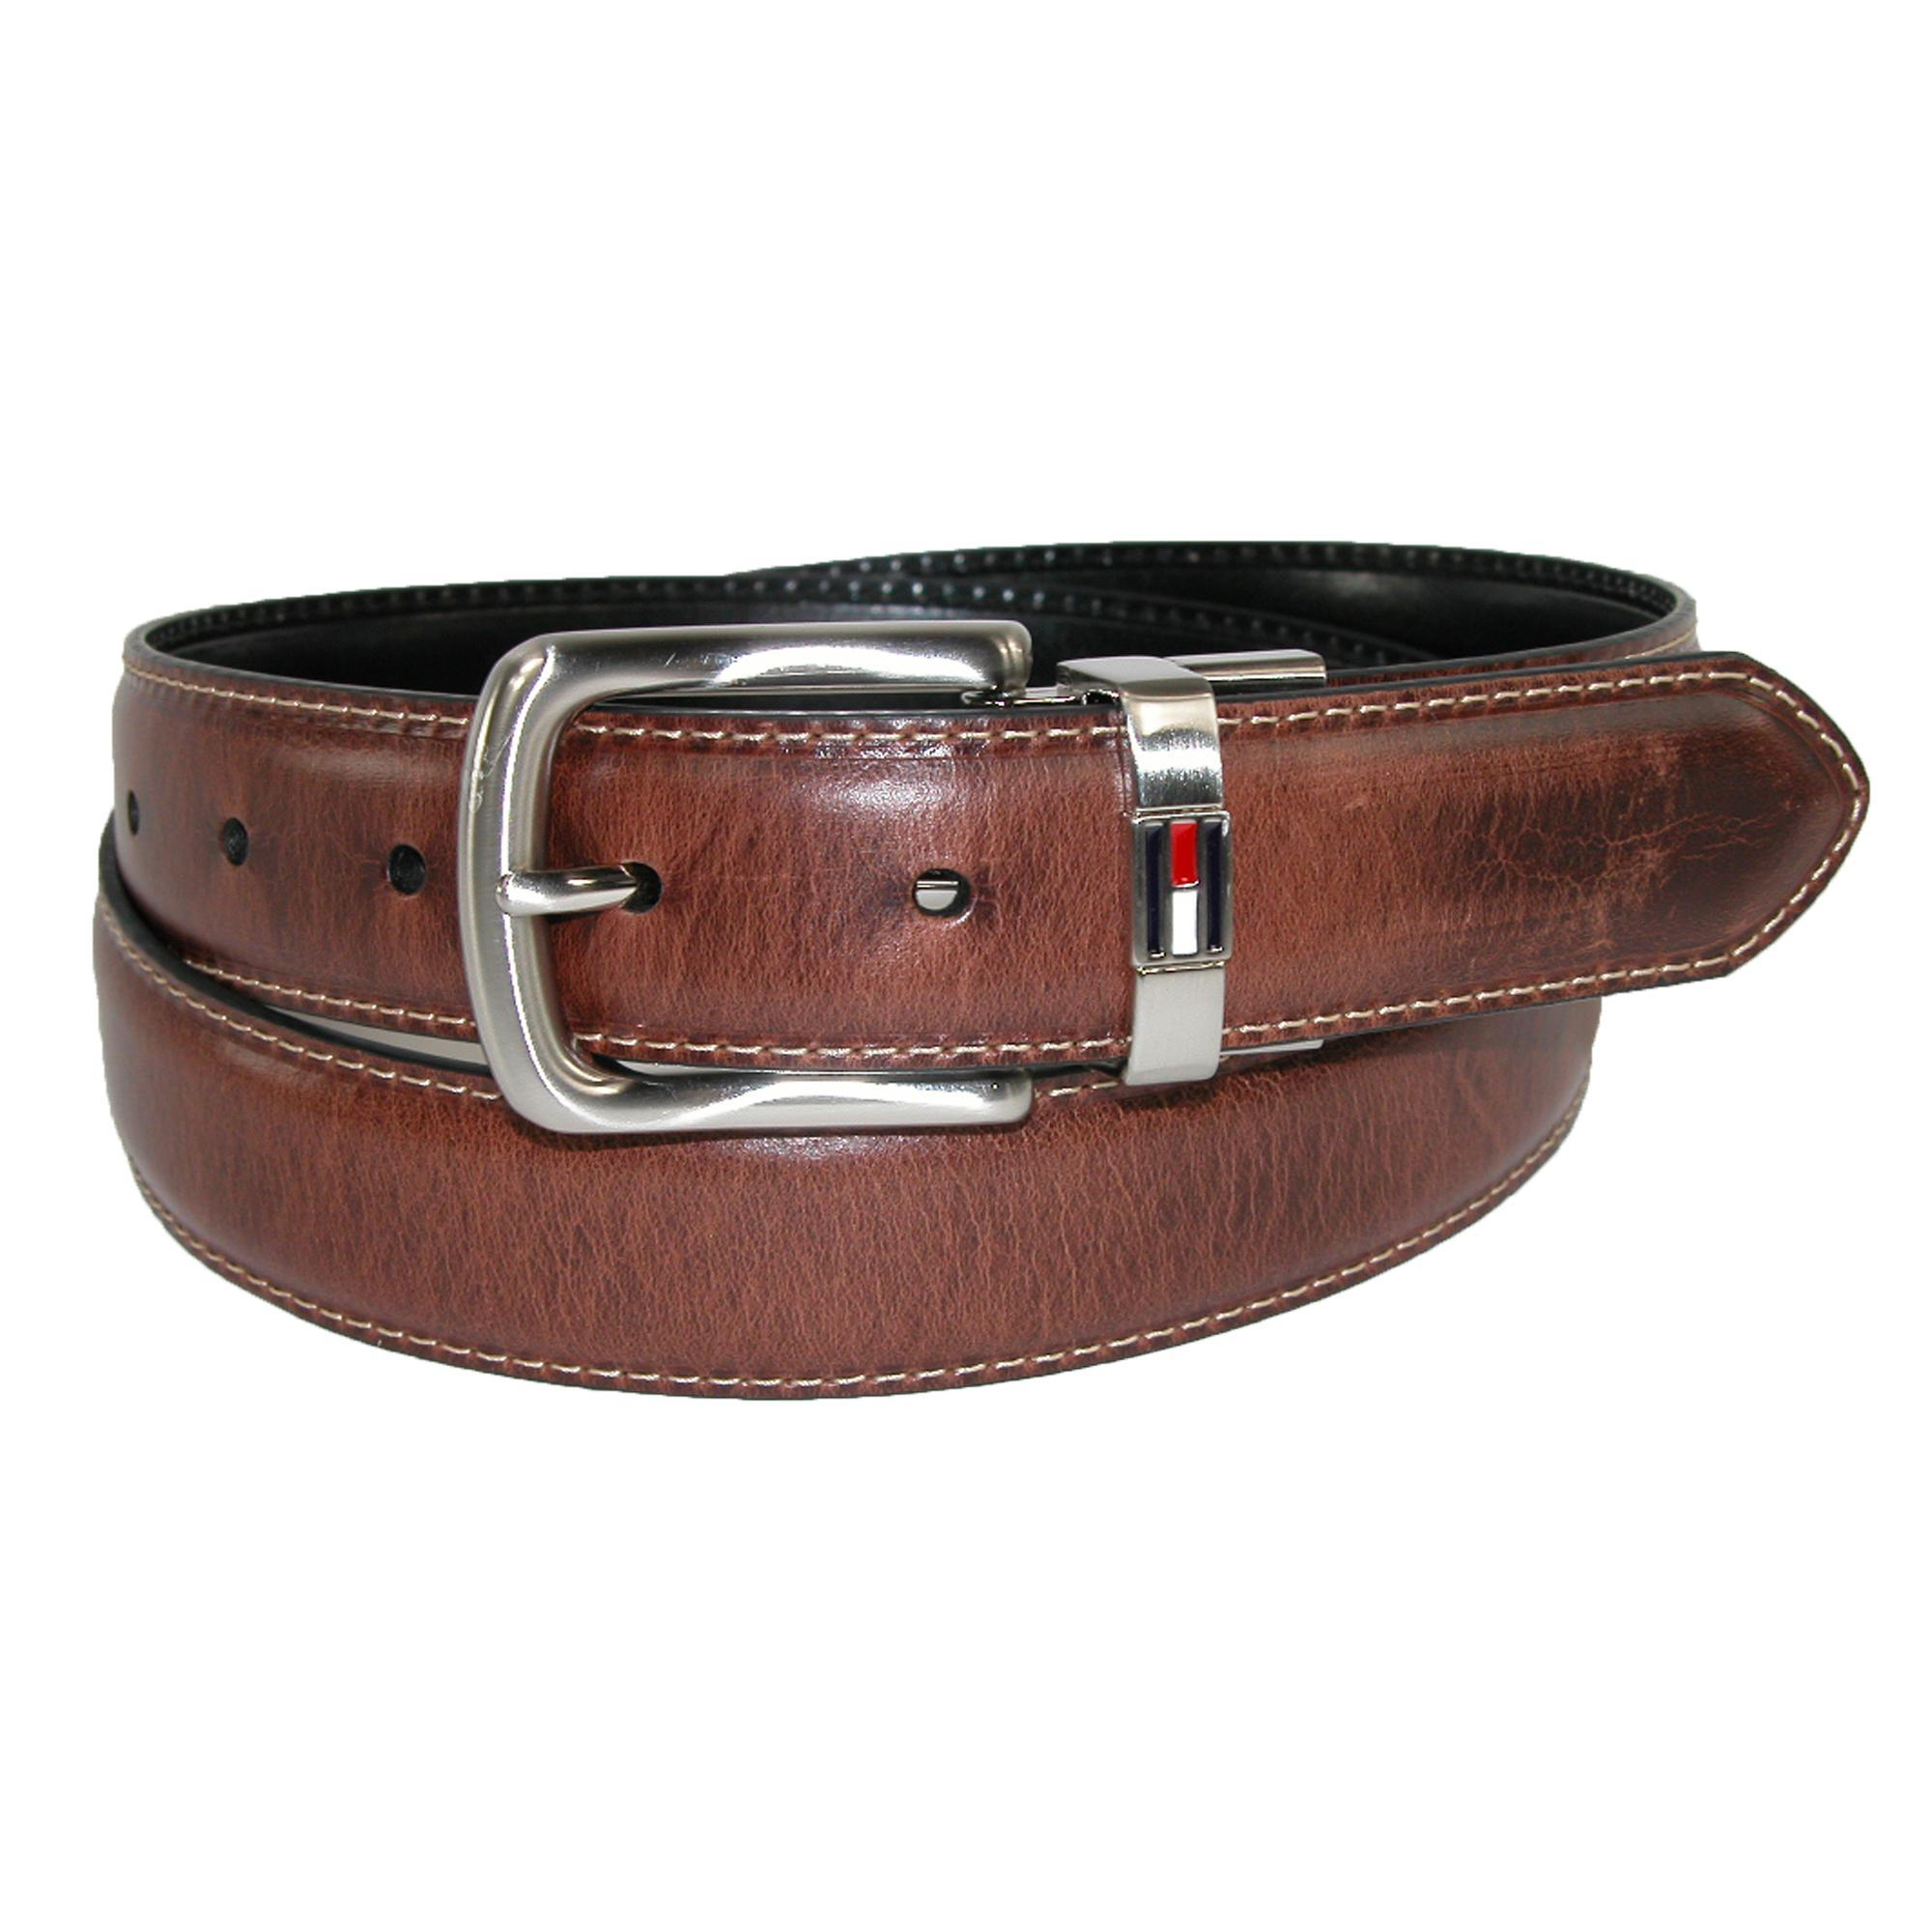 Tommy_Hilfiger_Men's_Leather_Reversible_Belt_with_Flag_Logo_-_Brown_to